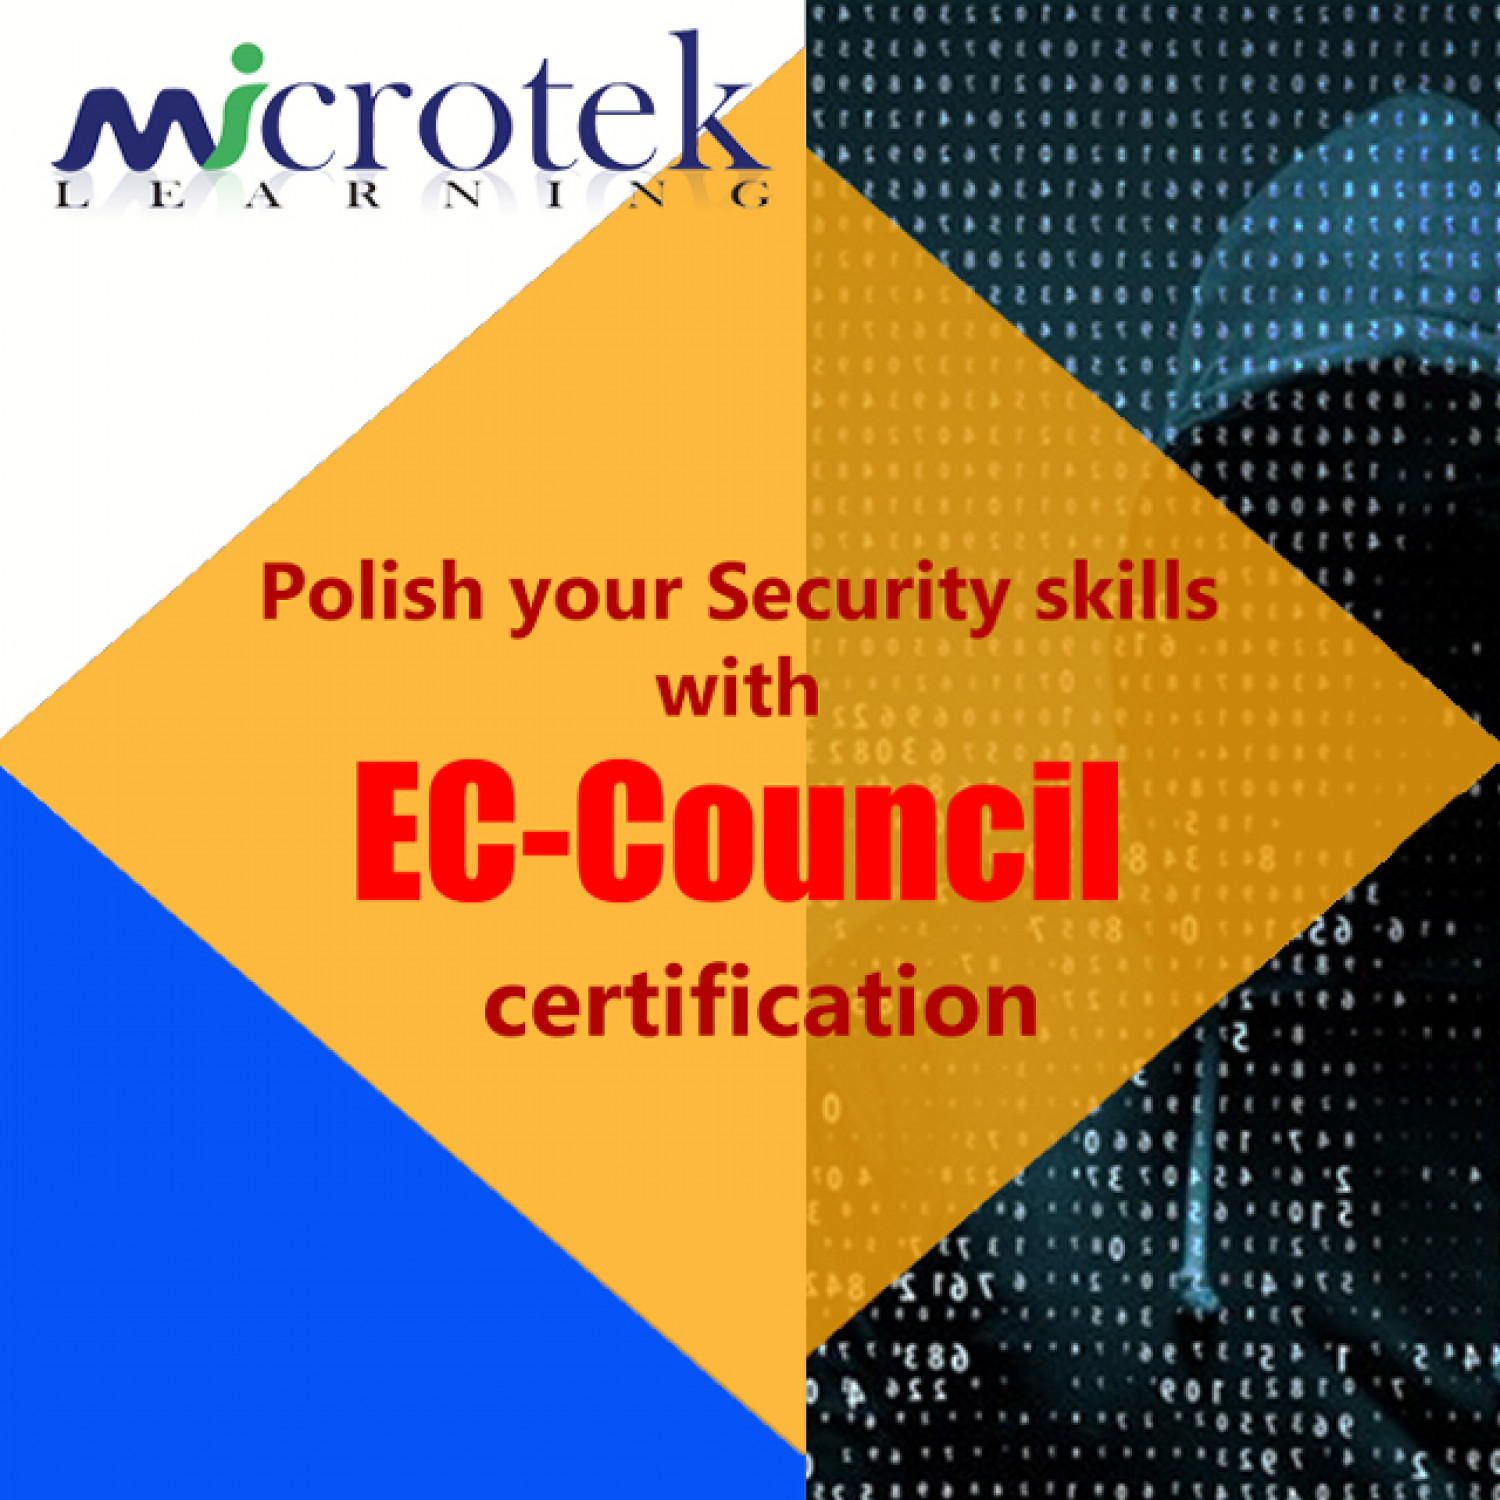 EC-Council Certification Infographic